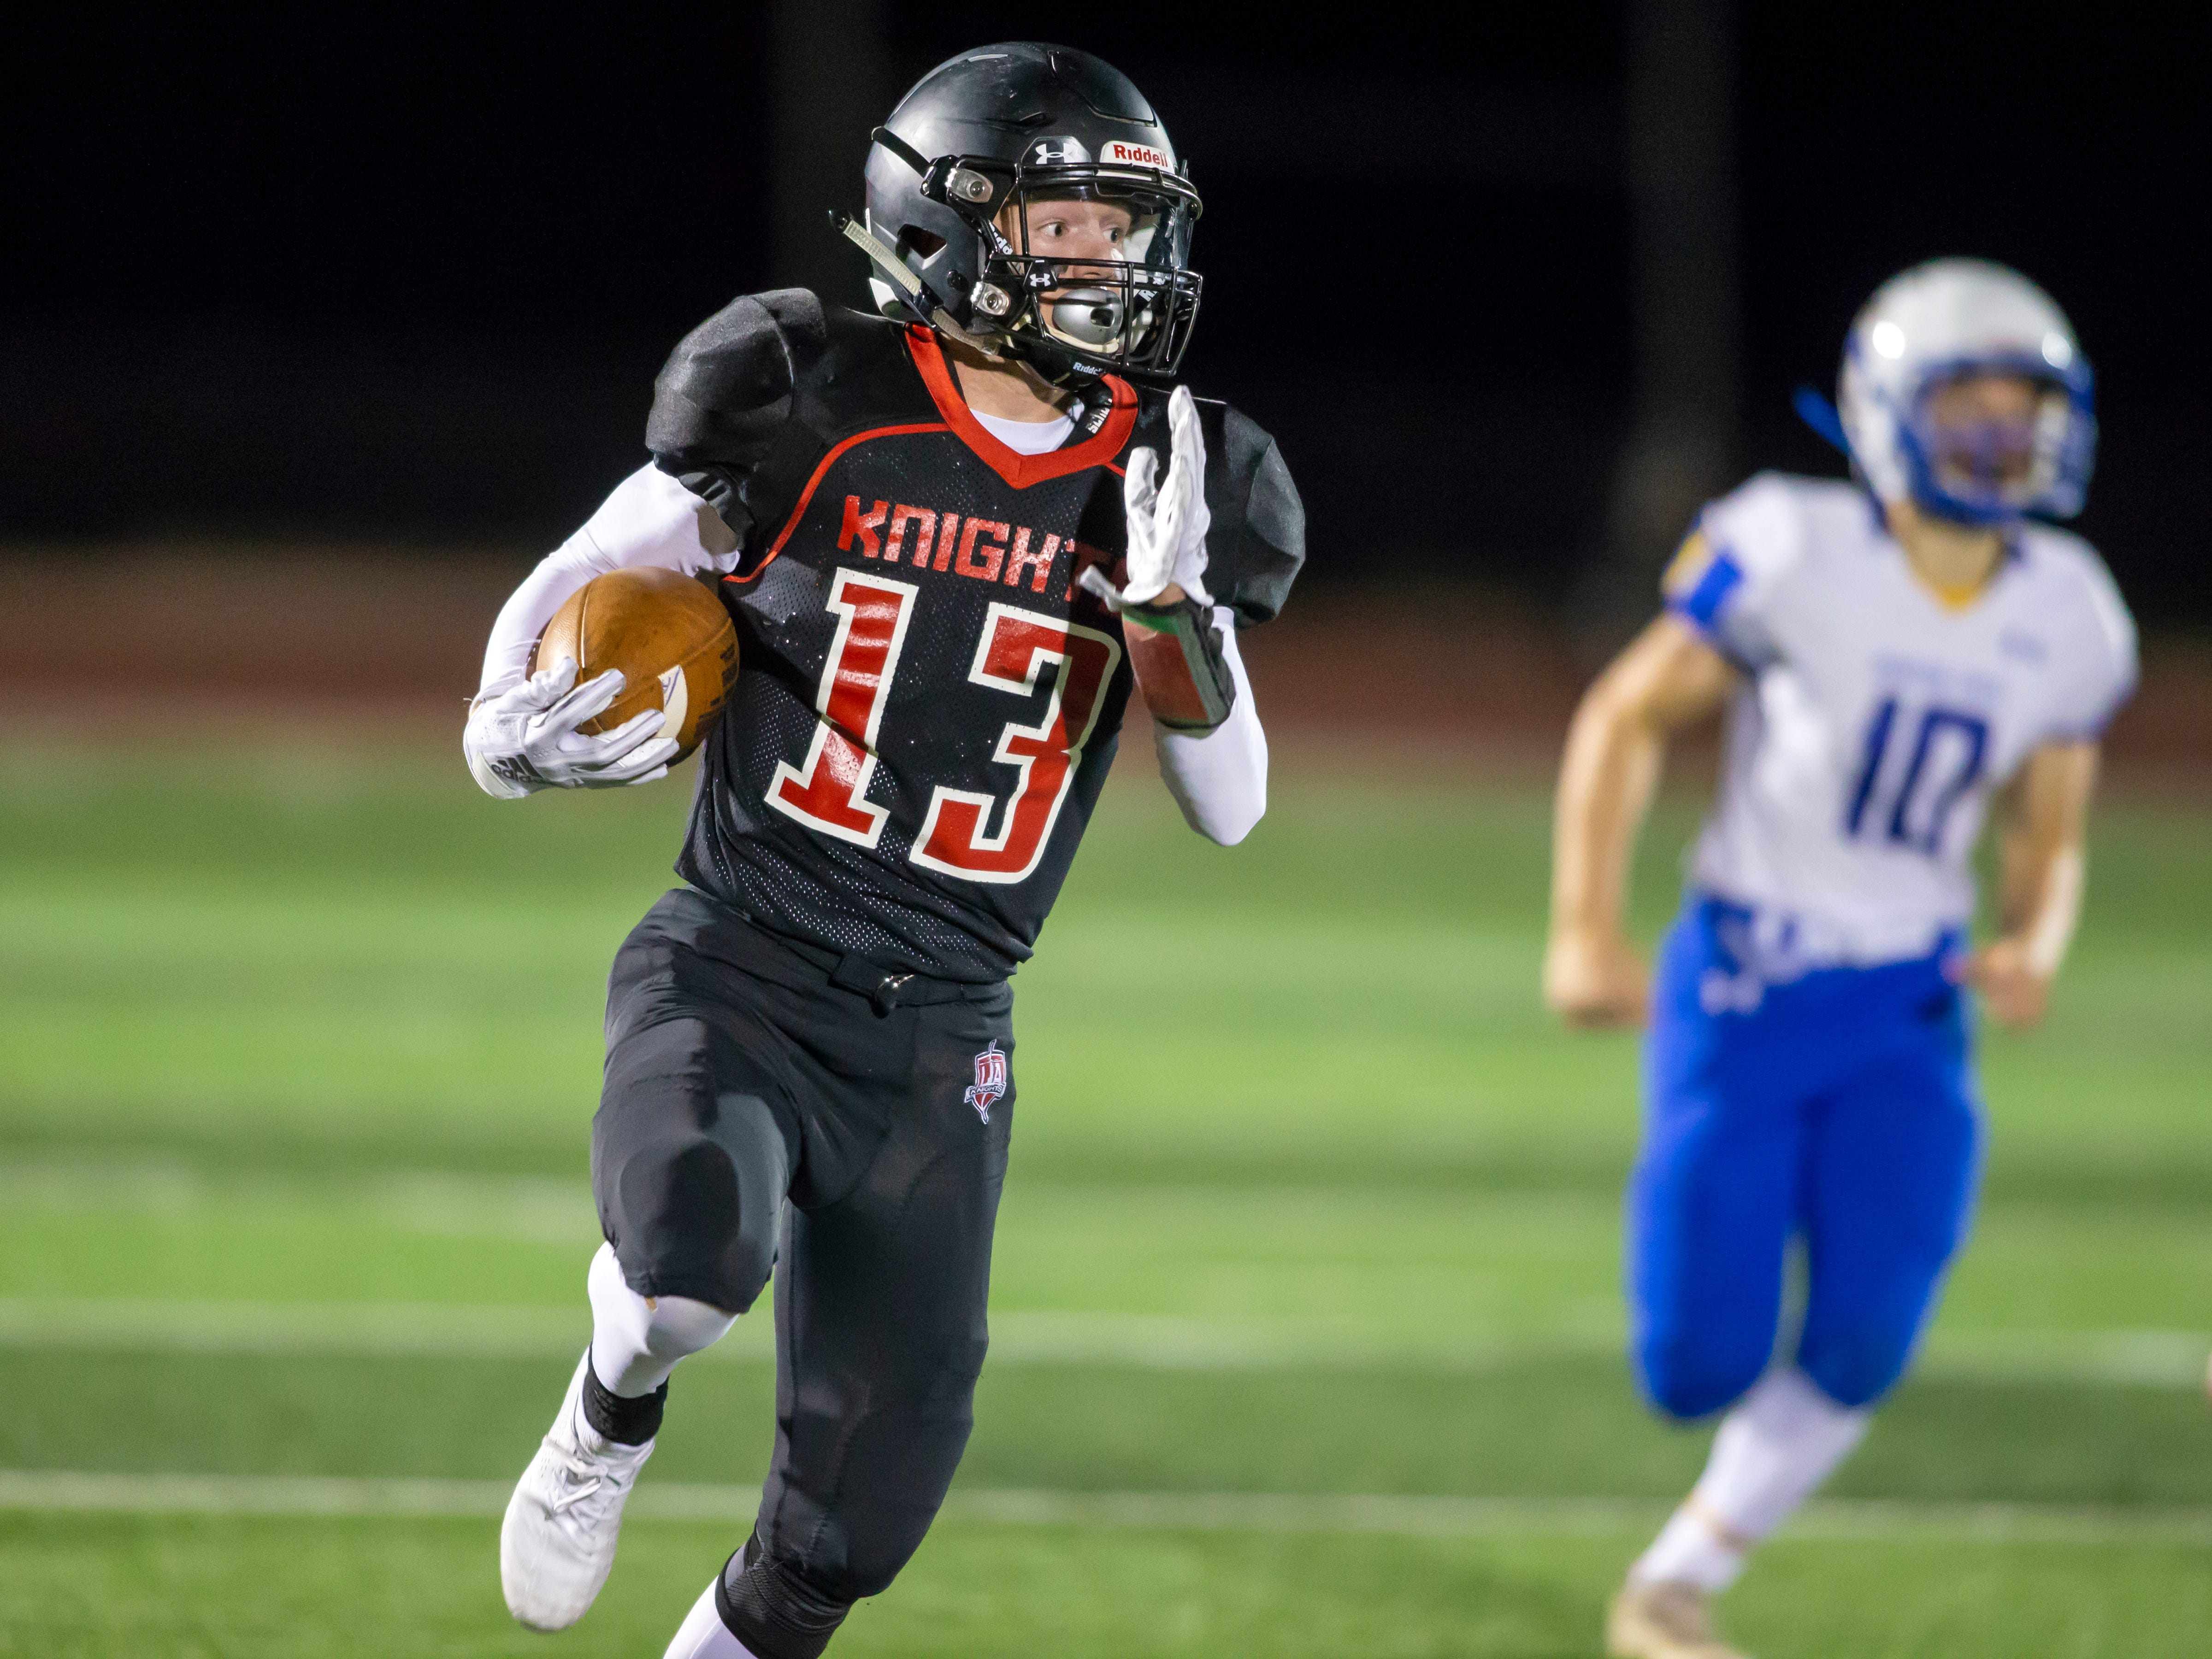 Lourdes Academy's Colton Clark finds running room on the Knights' first offensive play against Johnson Creek on J.J. Keller Field at Titan Stadium Thursday, October 4, 2018.